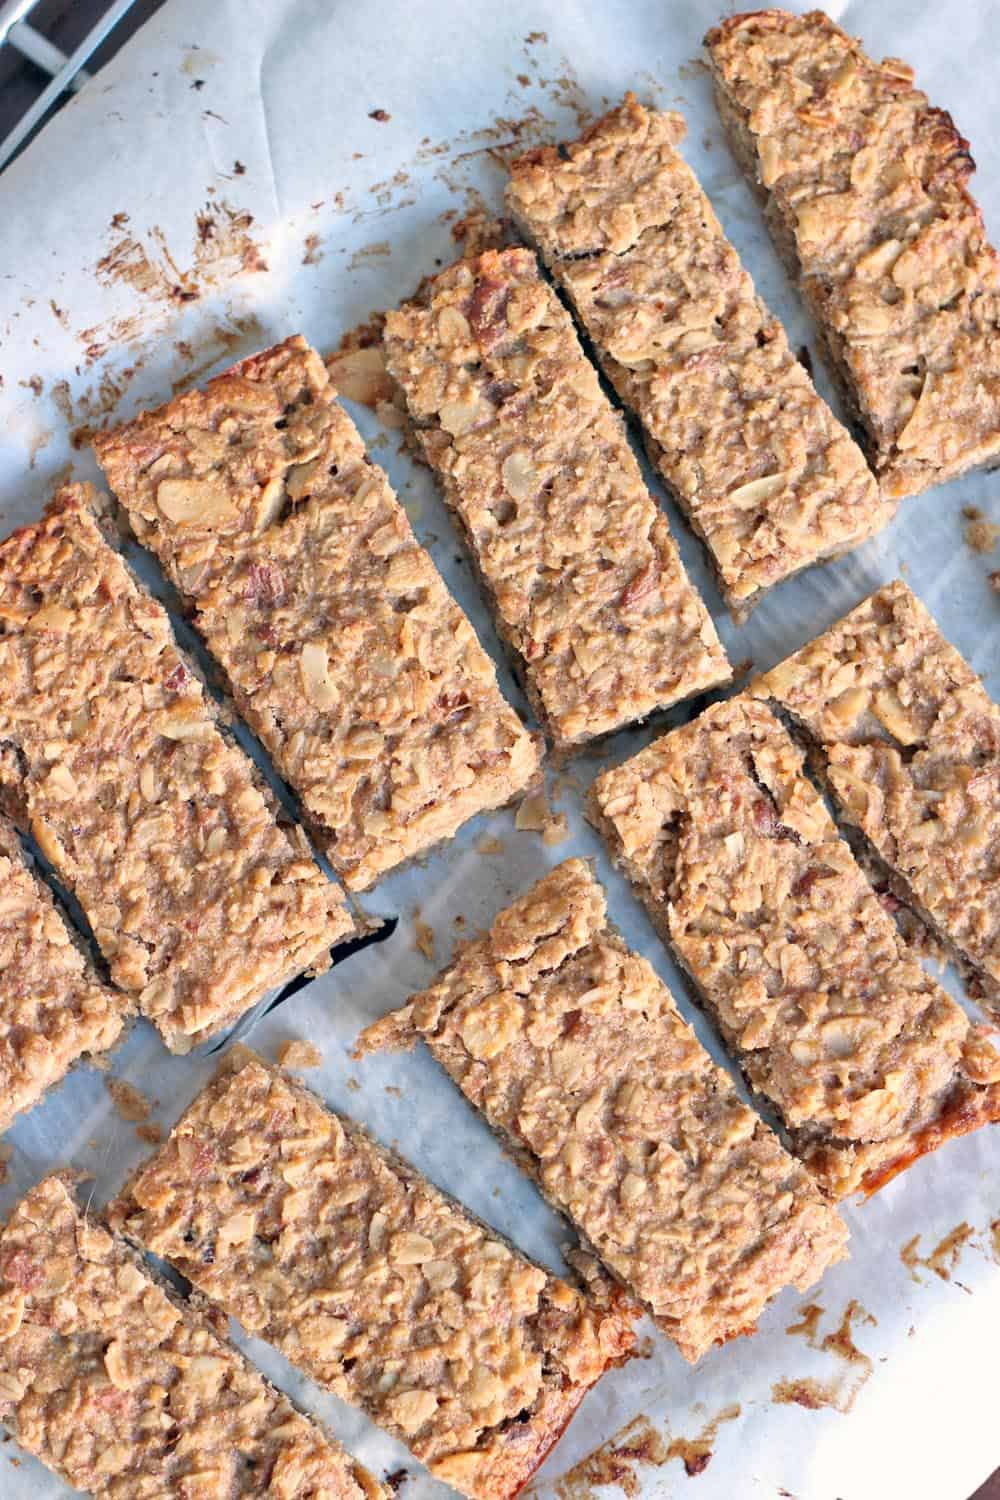 Peanut butter and banana energy bars